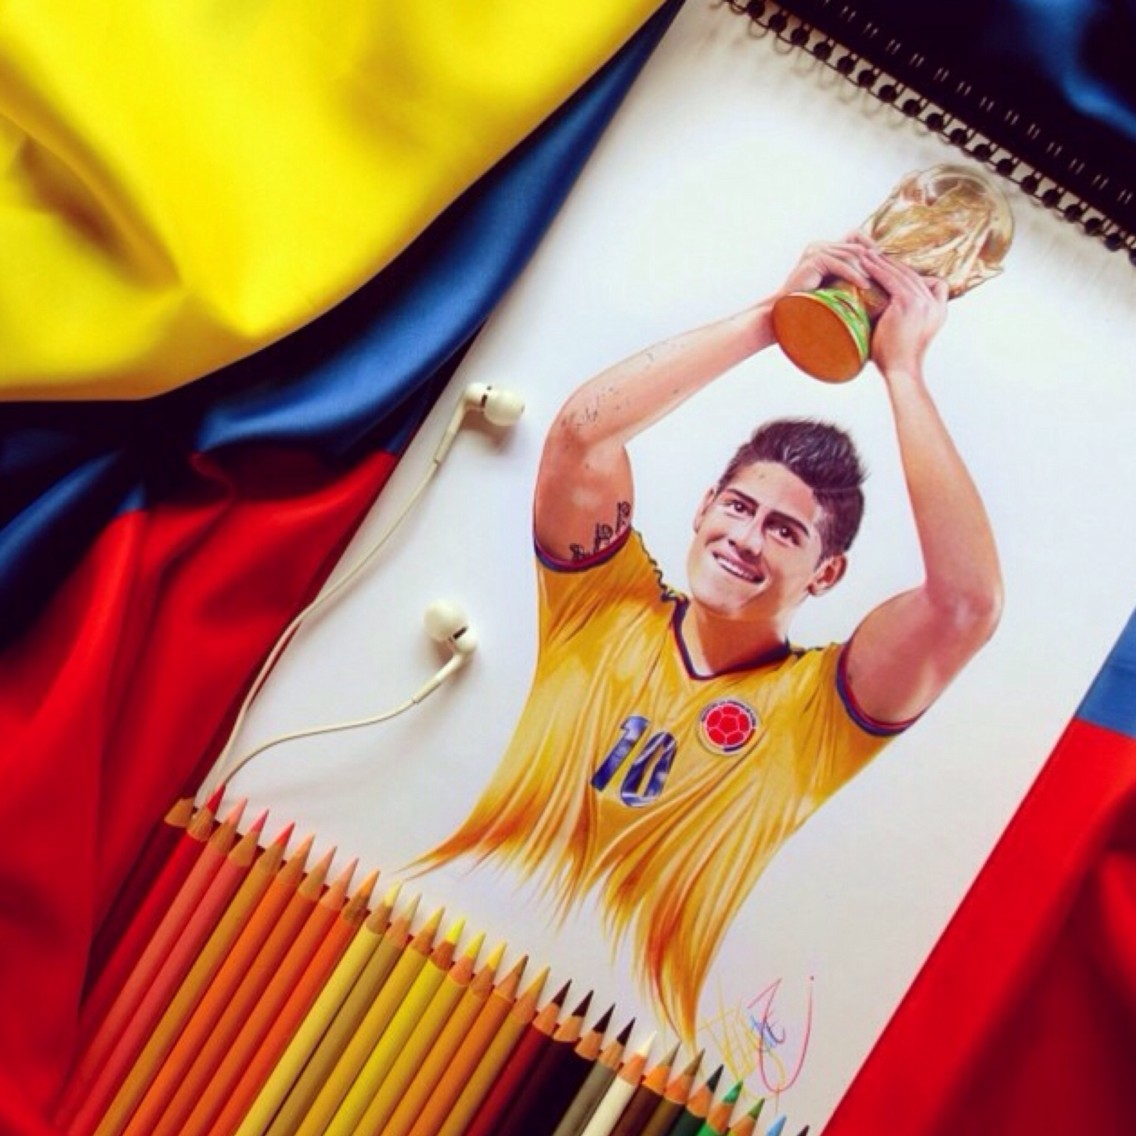 james rodriguez color pencil drawings by santiago